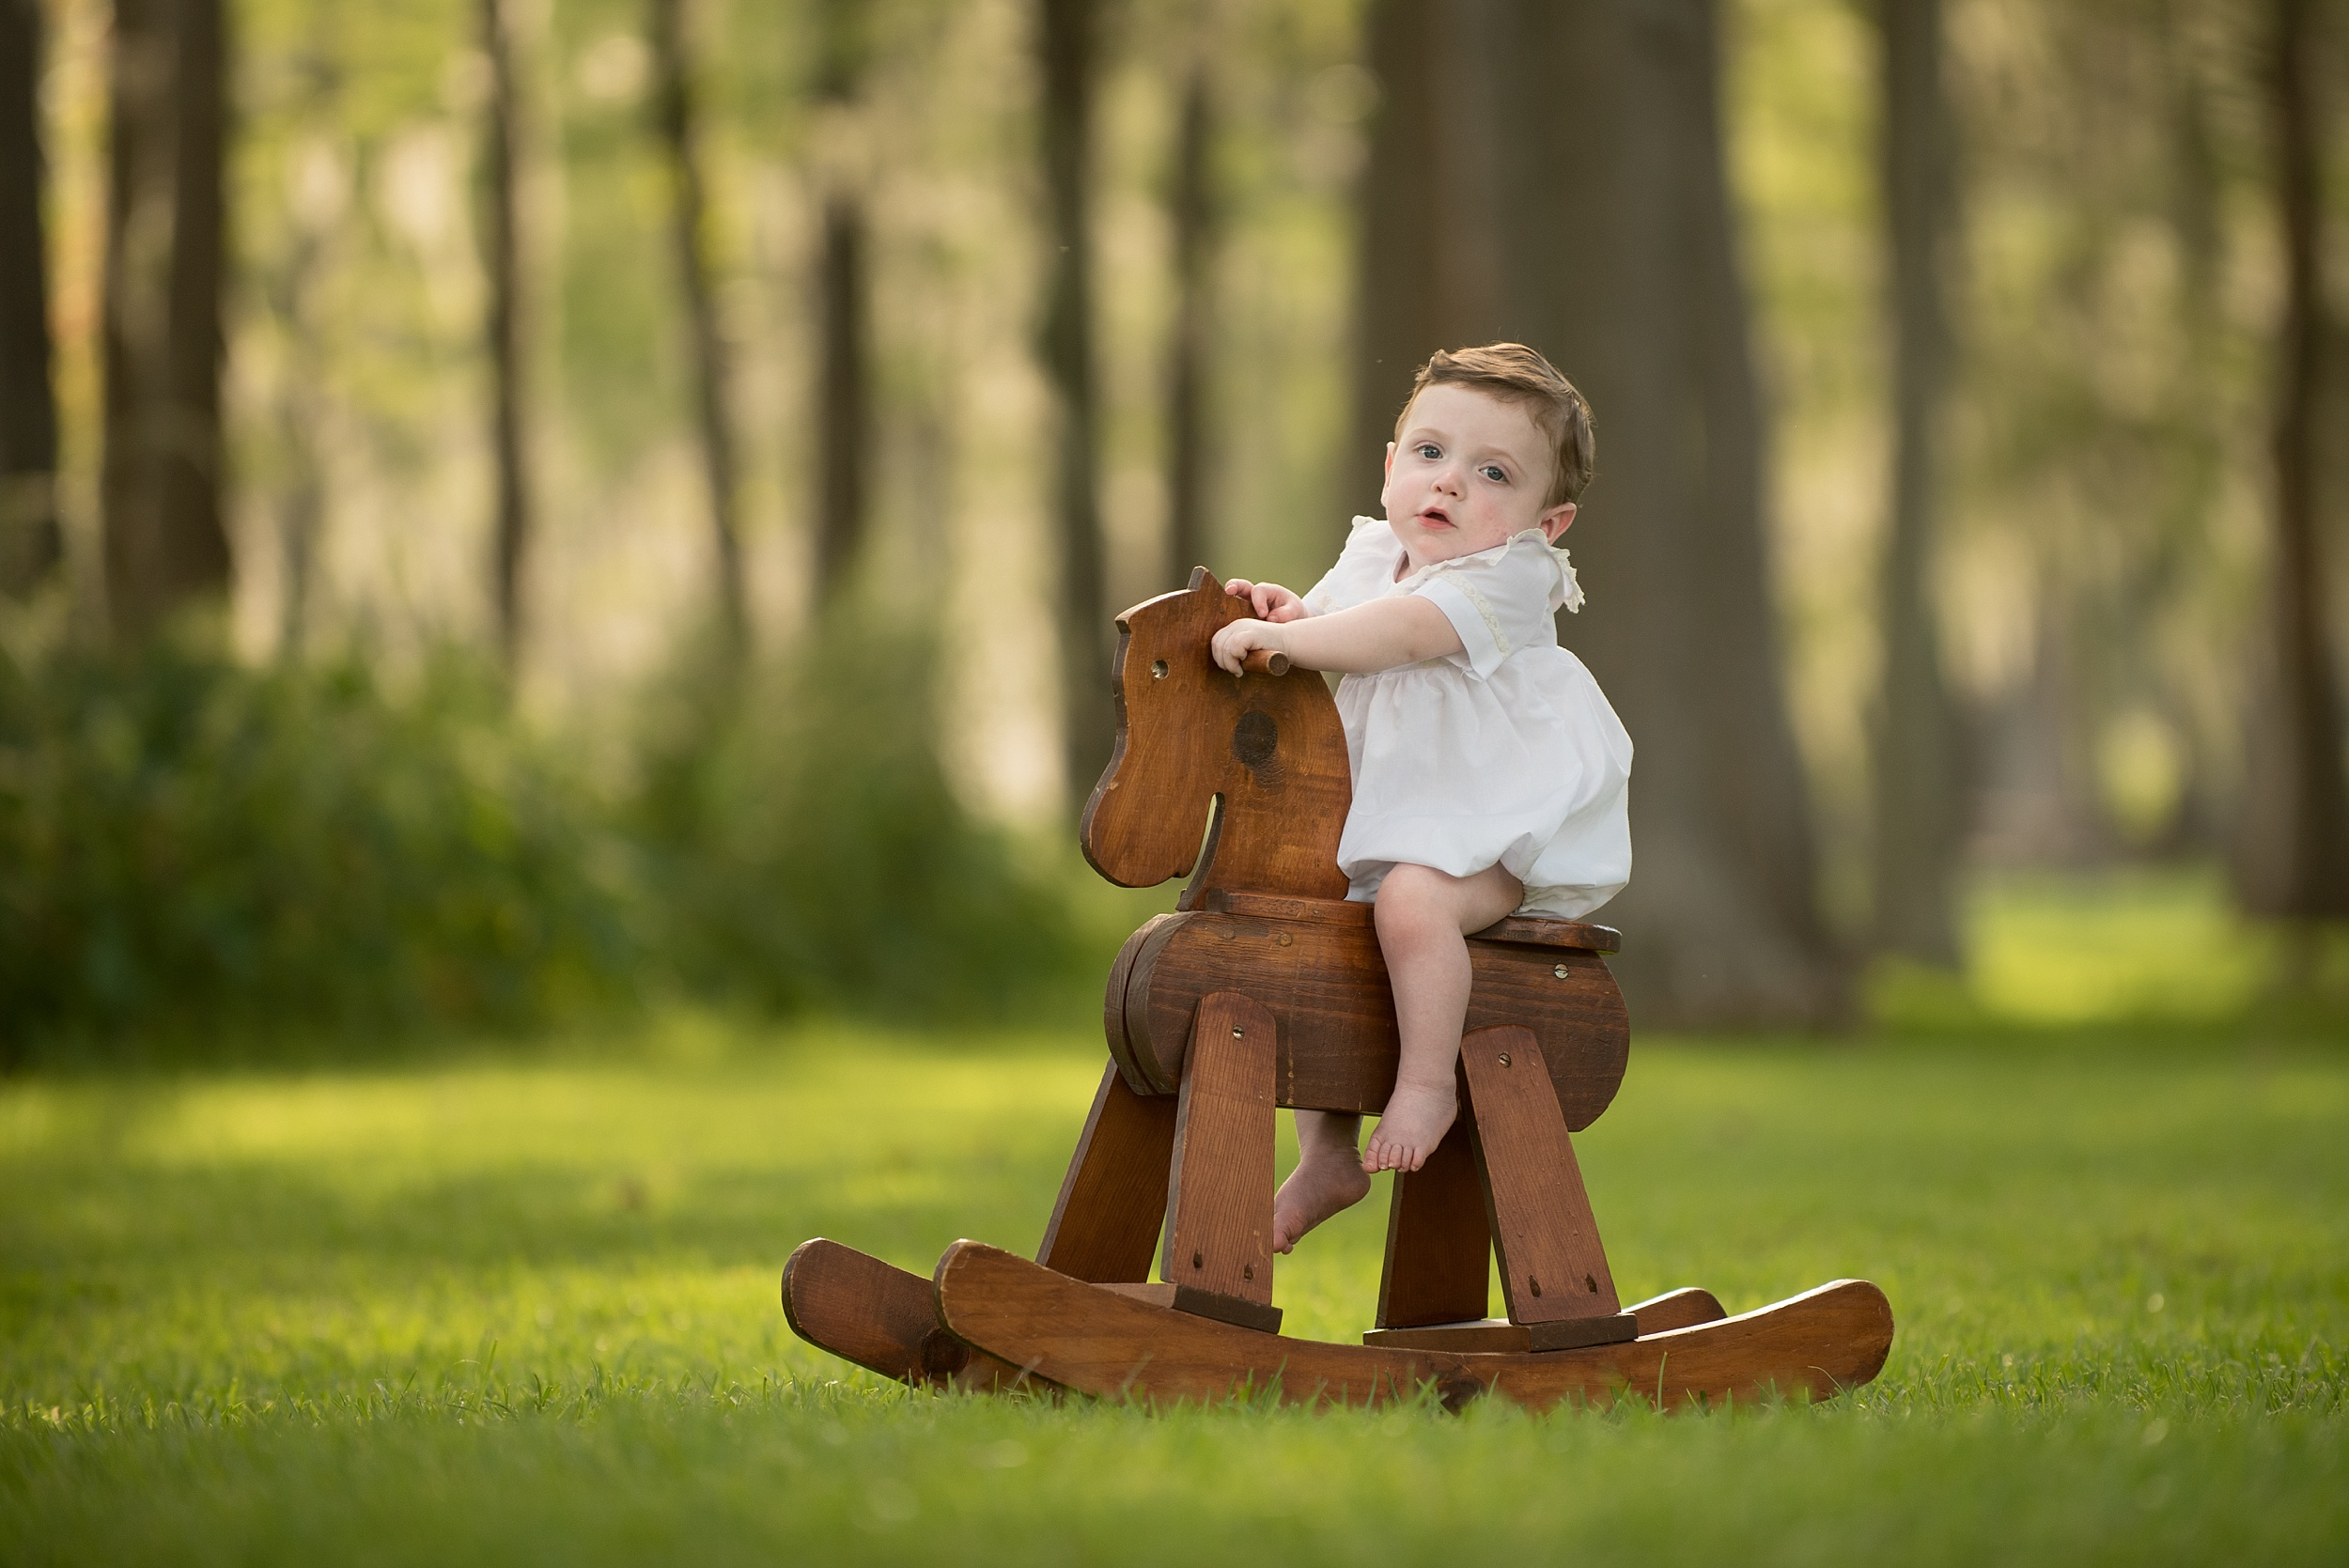 one year old infant boy in white heirloom outfit sits on an antique rocking horse outdoors